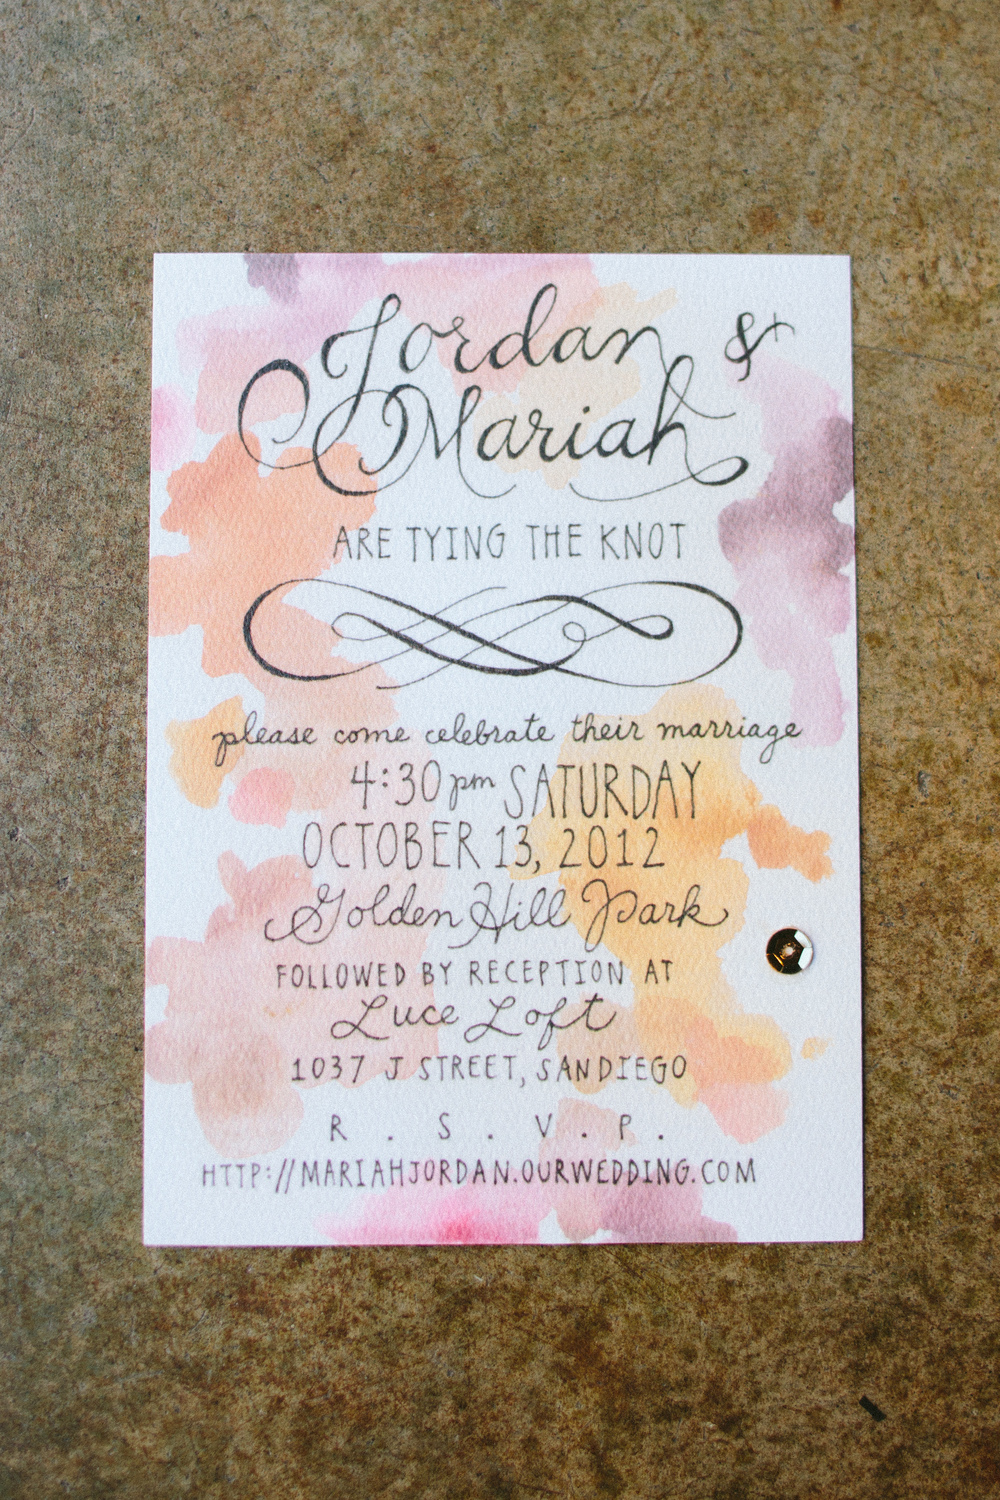 Paige-Newton-Photography-Wedding-Details-Watercolor-Invite.jpg